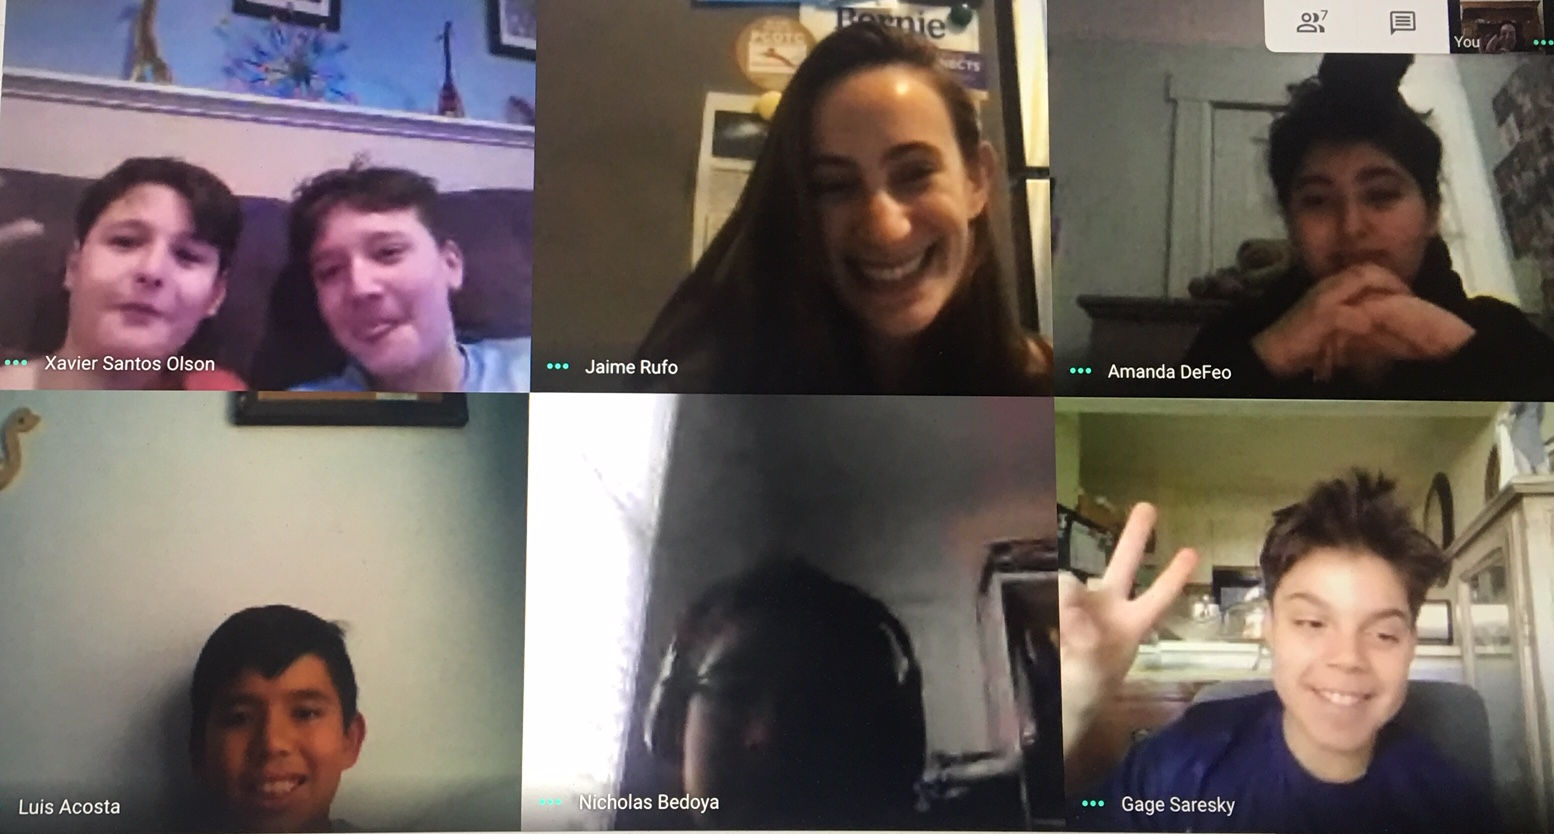 Club meeting during a Zoom session